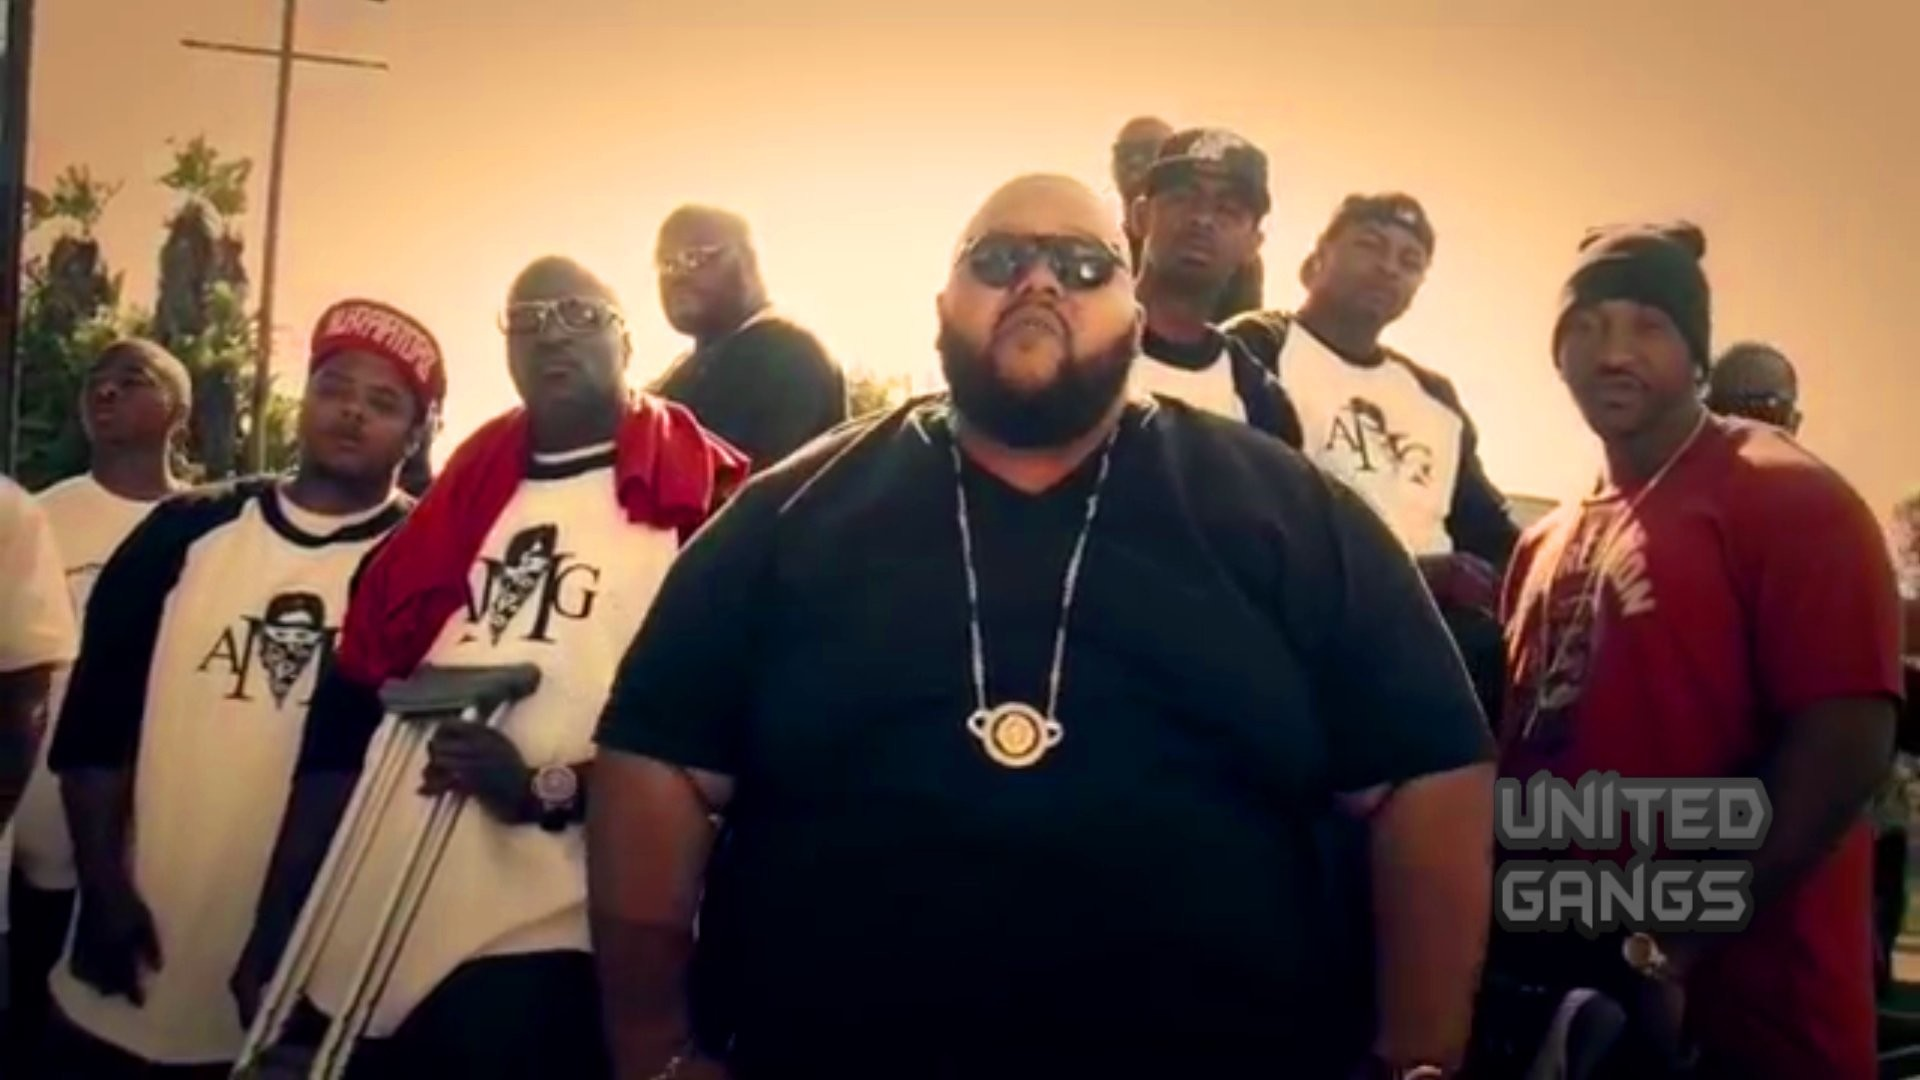 … 1973) better known by his stage name Big Wy is an American rapper from  Inglewood, CA. Big Wy made his debut on Bloods & Crips (Bangin On Wax 1&2)  under …